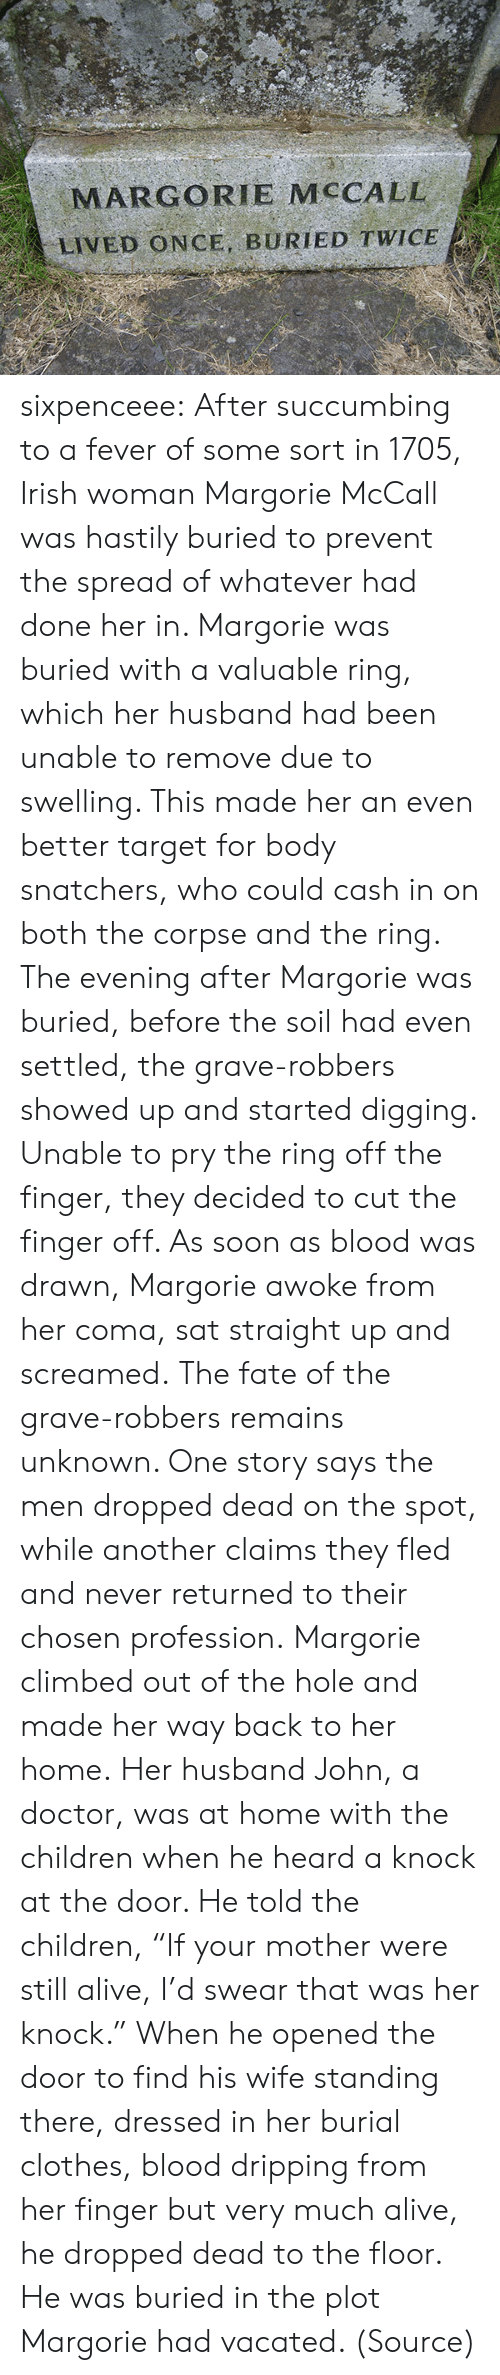 "Alive, Children, and Clothes: MARGORIE MCCALL  LIVED ONCE, BURIED TWICE sixpenceee:  After succumbing to a fever of some sort in 1705, Irish woman Margorie McCall was hastily buried to prevent the spread of whatever had done her in. Margorie was buried with a valuable ring, which her husband had been unable to remove due to swelling. This made her an even better target for body snatchers, who could cash in on both the corpse and the ring. The evening after Margorie was buried, before the soil had even settled, the grave-robbers showed up and started digging. Unable to pry the ring off the finger, they decided to cut the finger off. As soon as blood was drawn, Margorie awoke from her coma, sat straight up and screamed. The fate of the grave-robbers remains unknown. One story says the men dropped dead on the spot, while another claims they fled and never returned to their chosen profession. Margorie climbed out of the hole and made her way back to her home. Her husband John, a doctor, was at home with the children when he heard a knock at the door. He told the children, ""If your mother were still alive, I'd swear that was her knock."" When he opened the door to find his wife standing there, dressed in her burial clothes, blood dripping from her finger but very much alive, he dropped dead to the floor. He was buried in the plot Margorie had vacated. (Source)"